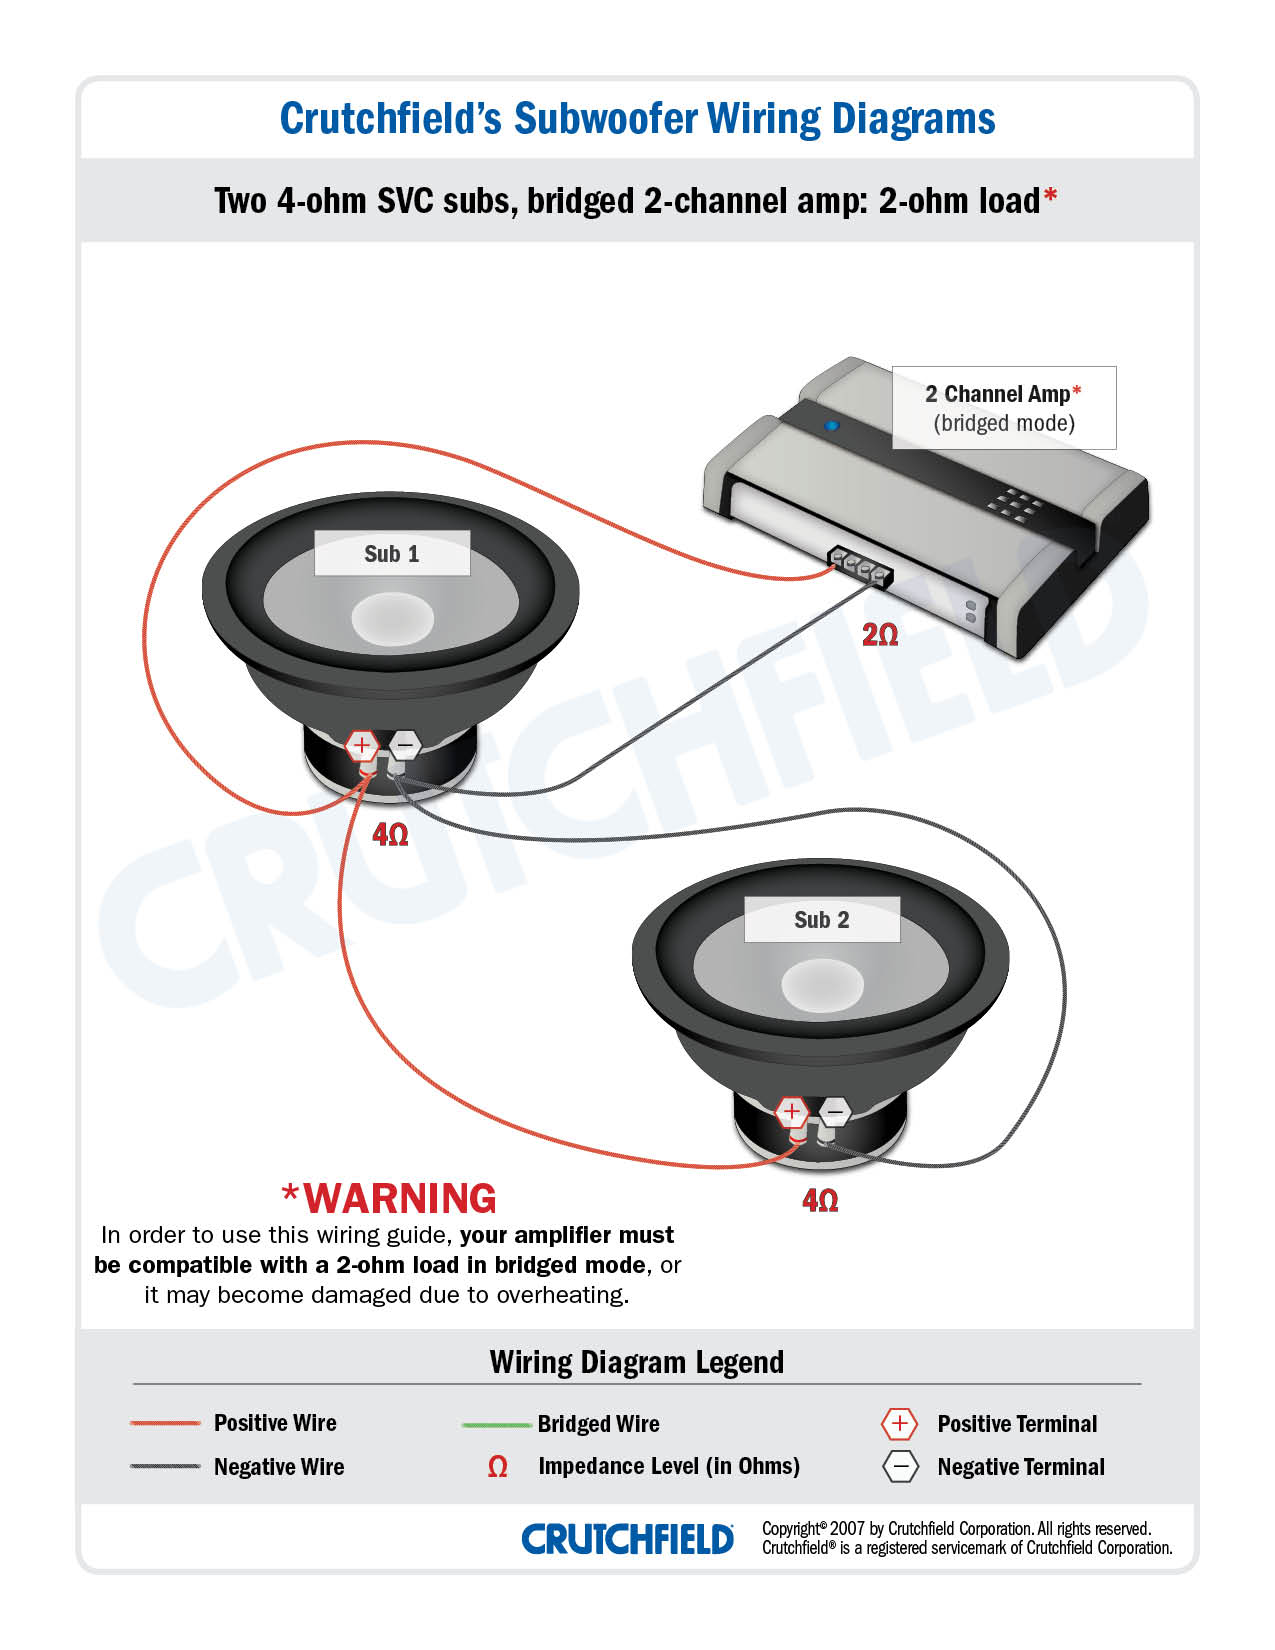 2 SVC 4 ohm 2 ch low imp subwoofer wiring diagrams rockford fosgate speaker wiring diagram at bakdesigns.co